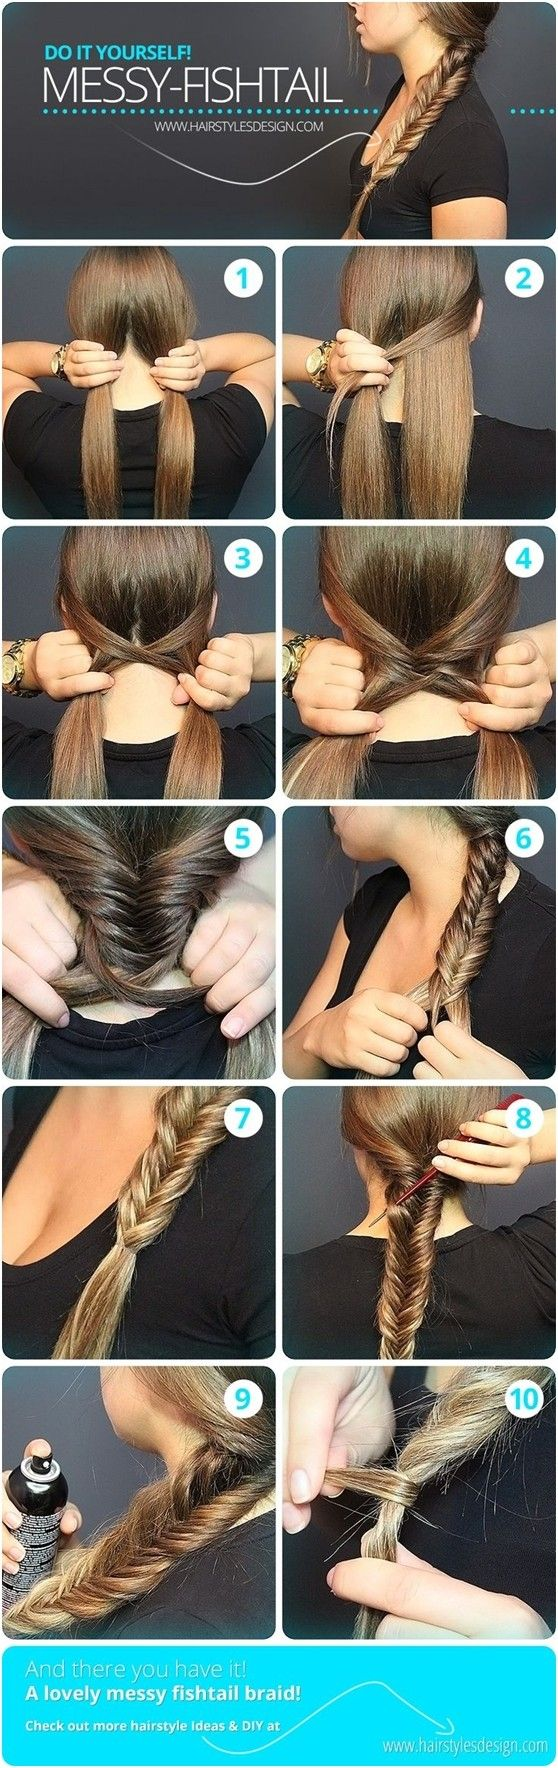 Messy Fishtail Braid Tutorial: Side Loose Braided Hairstyles